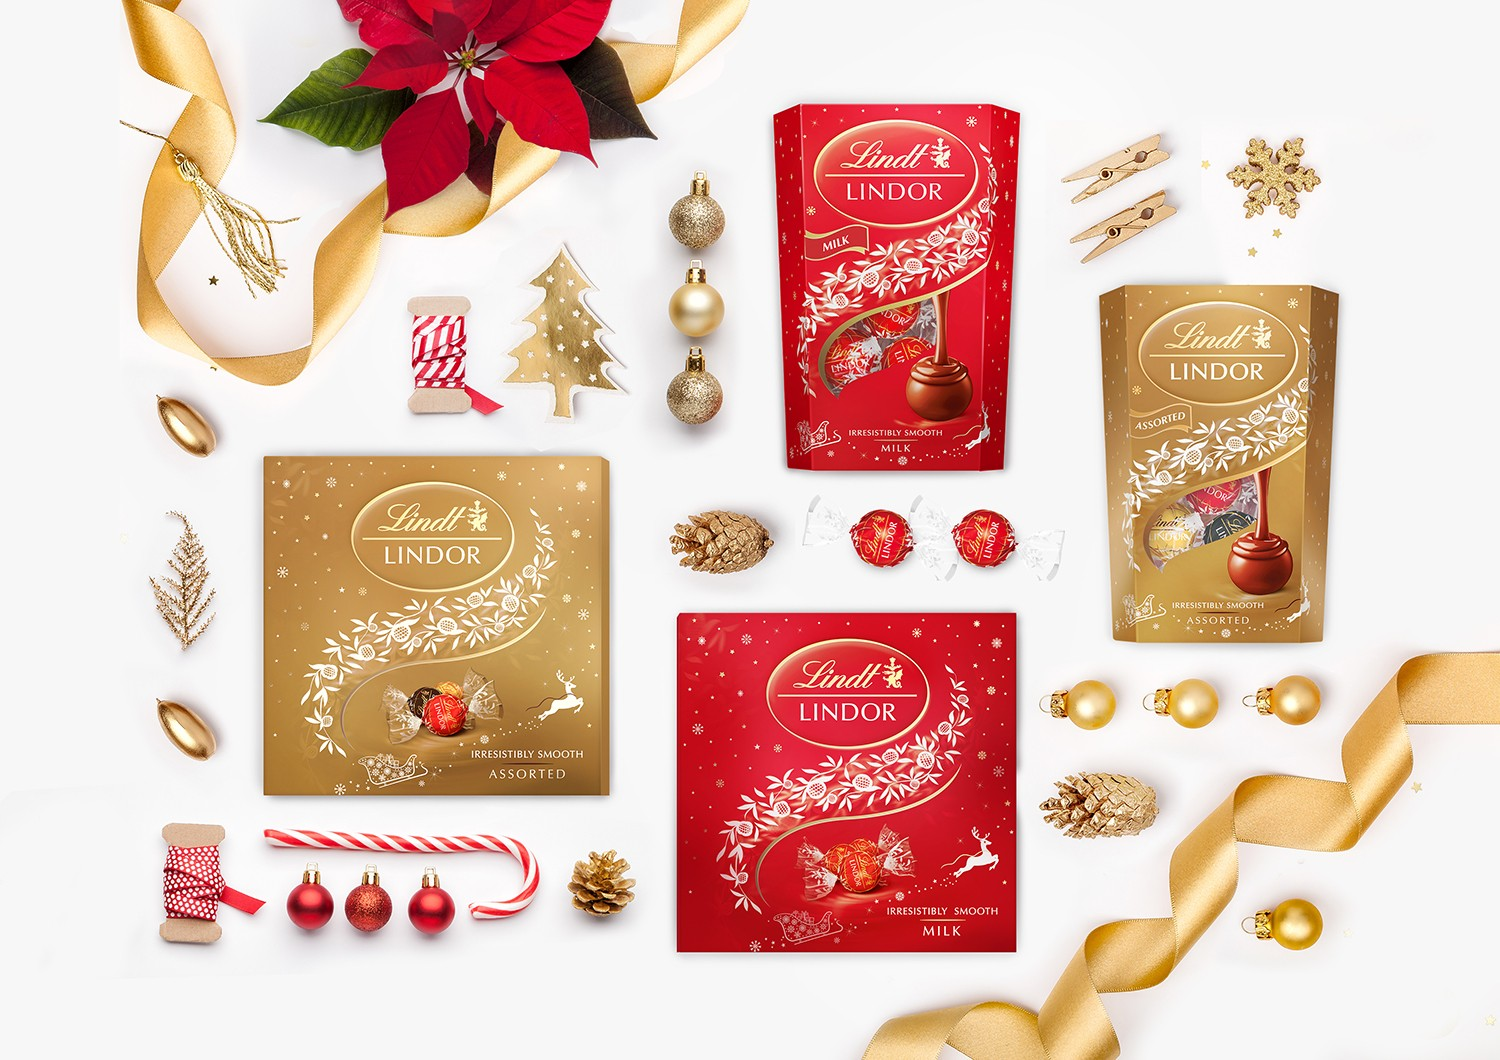 Unibe Branding Agency Prepared New Year and Christmas Packaging Design for Lindt